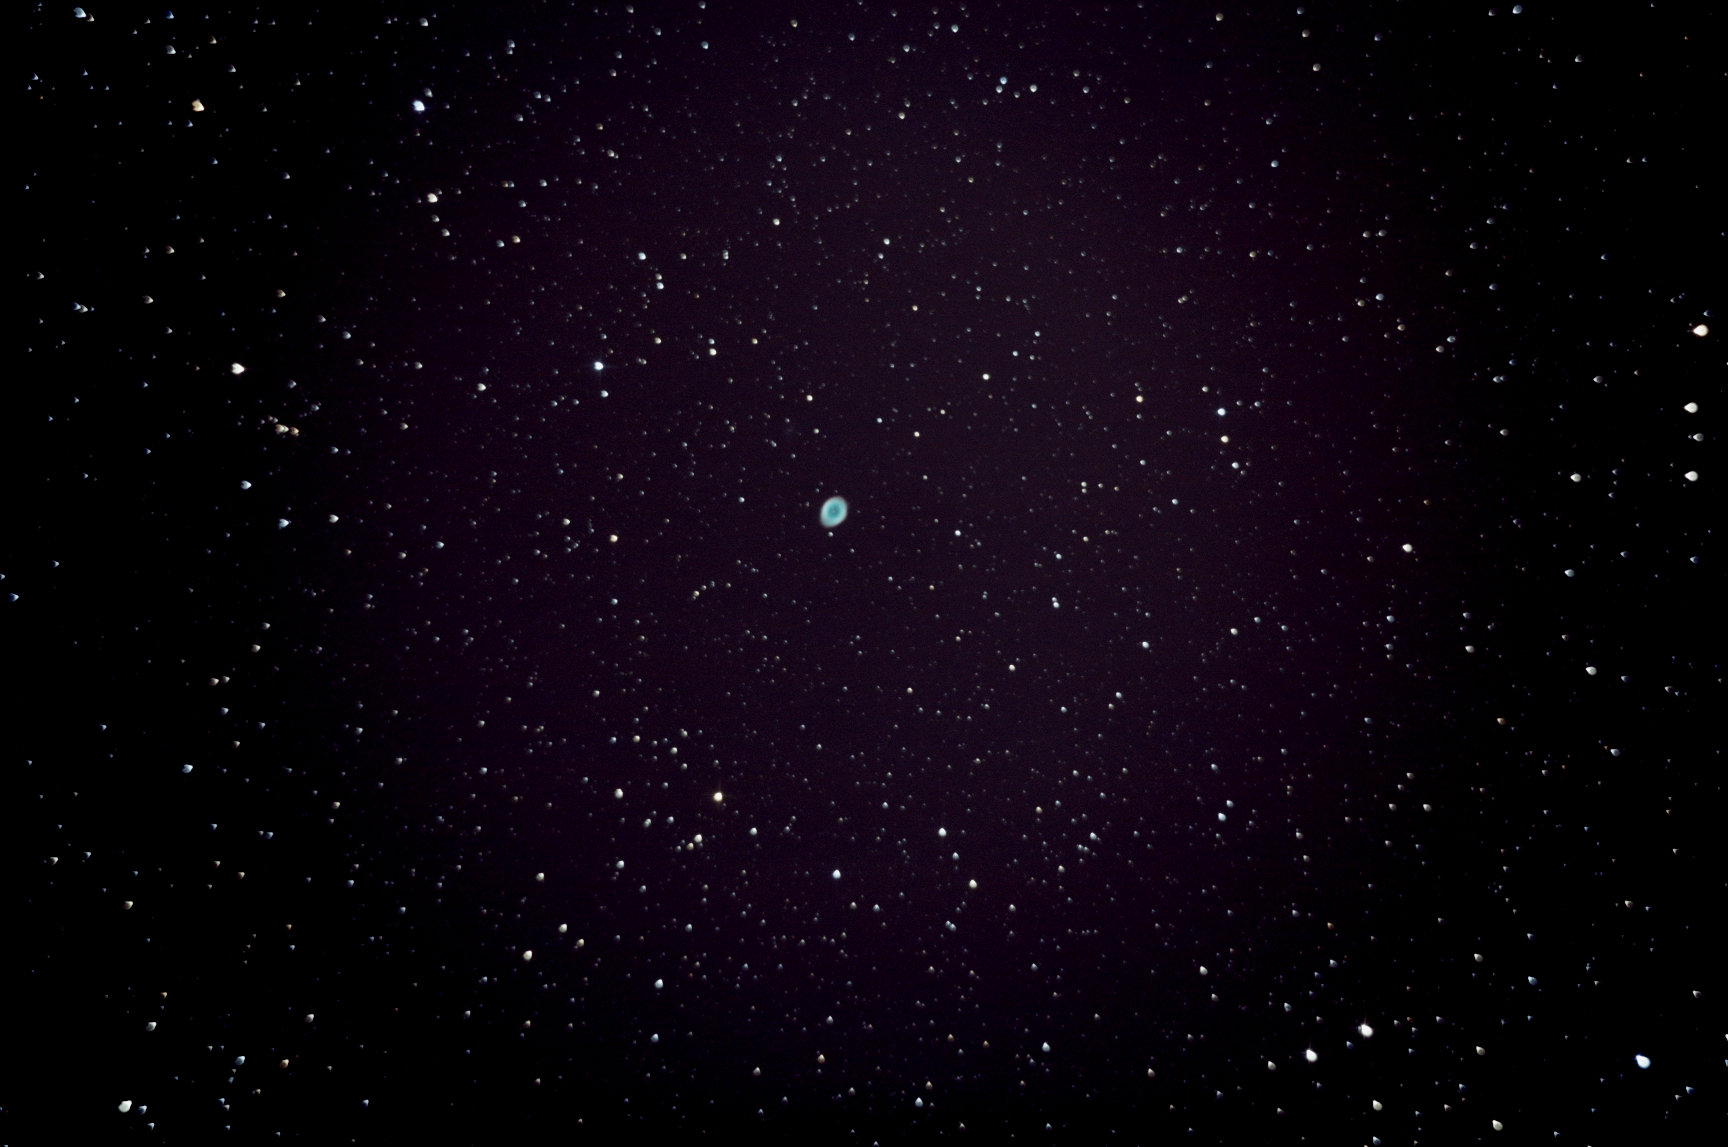 M57, captured on September 2nd, 2014 from Lakewood, CO. Stack of 30 lights, 10 darks, and 10 bias frames. Stacked image, with no post-processing.